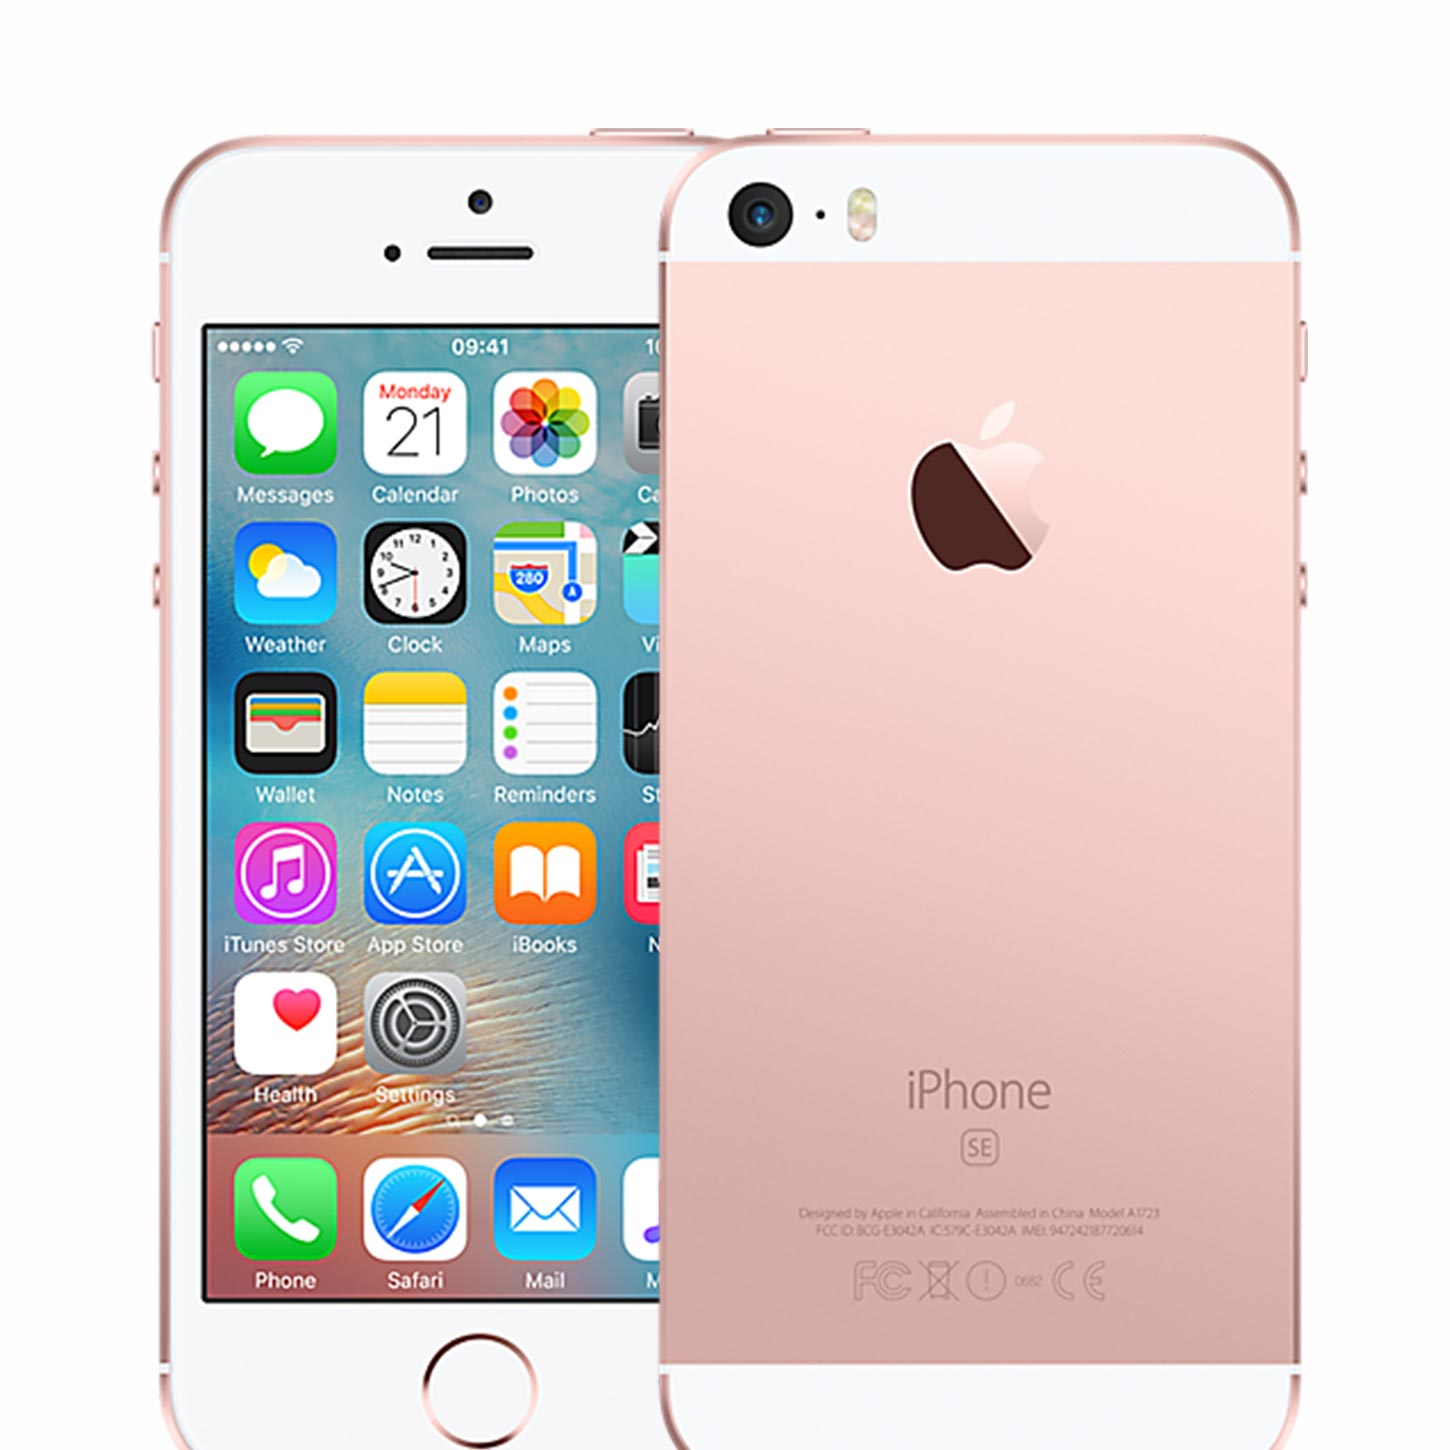 apple iphone se 32gb 4 12mp camera unlocked sim free smartphone in rose gold 190198293794 ebay. Black Bedroom Furniture Sets. Home Design Ideas